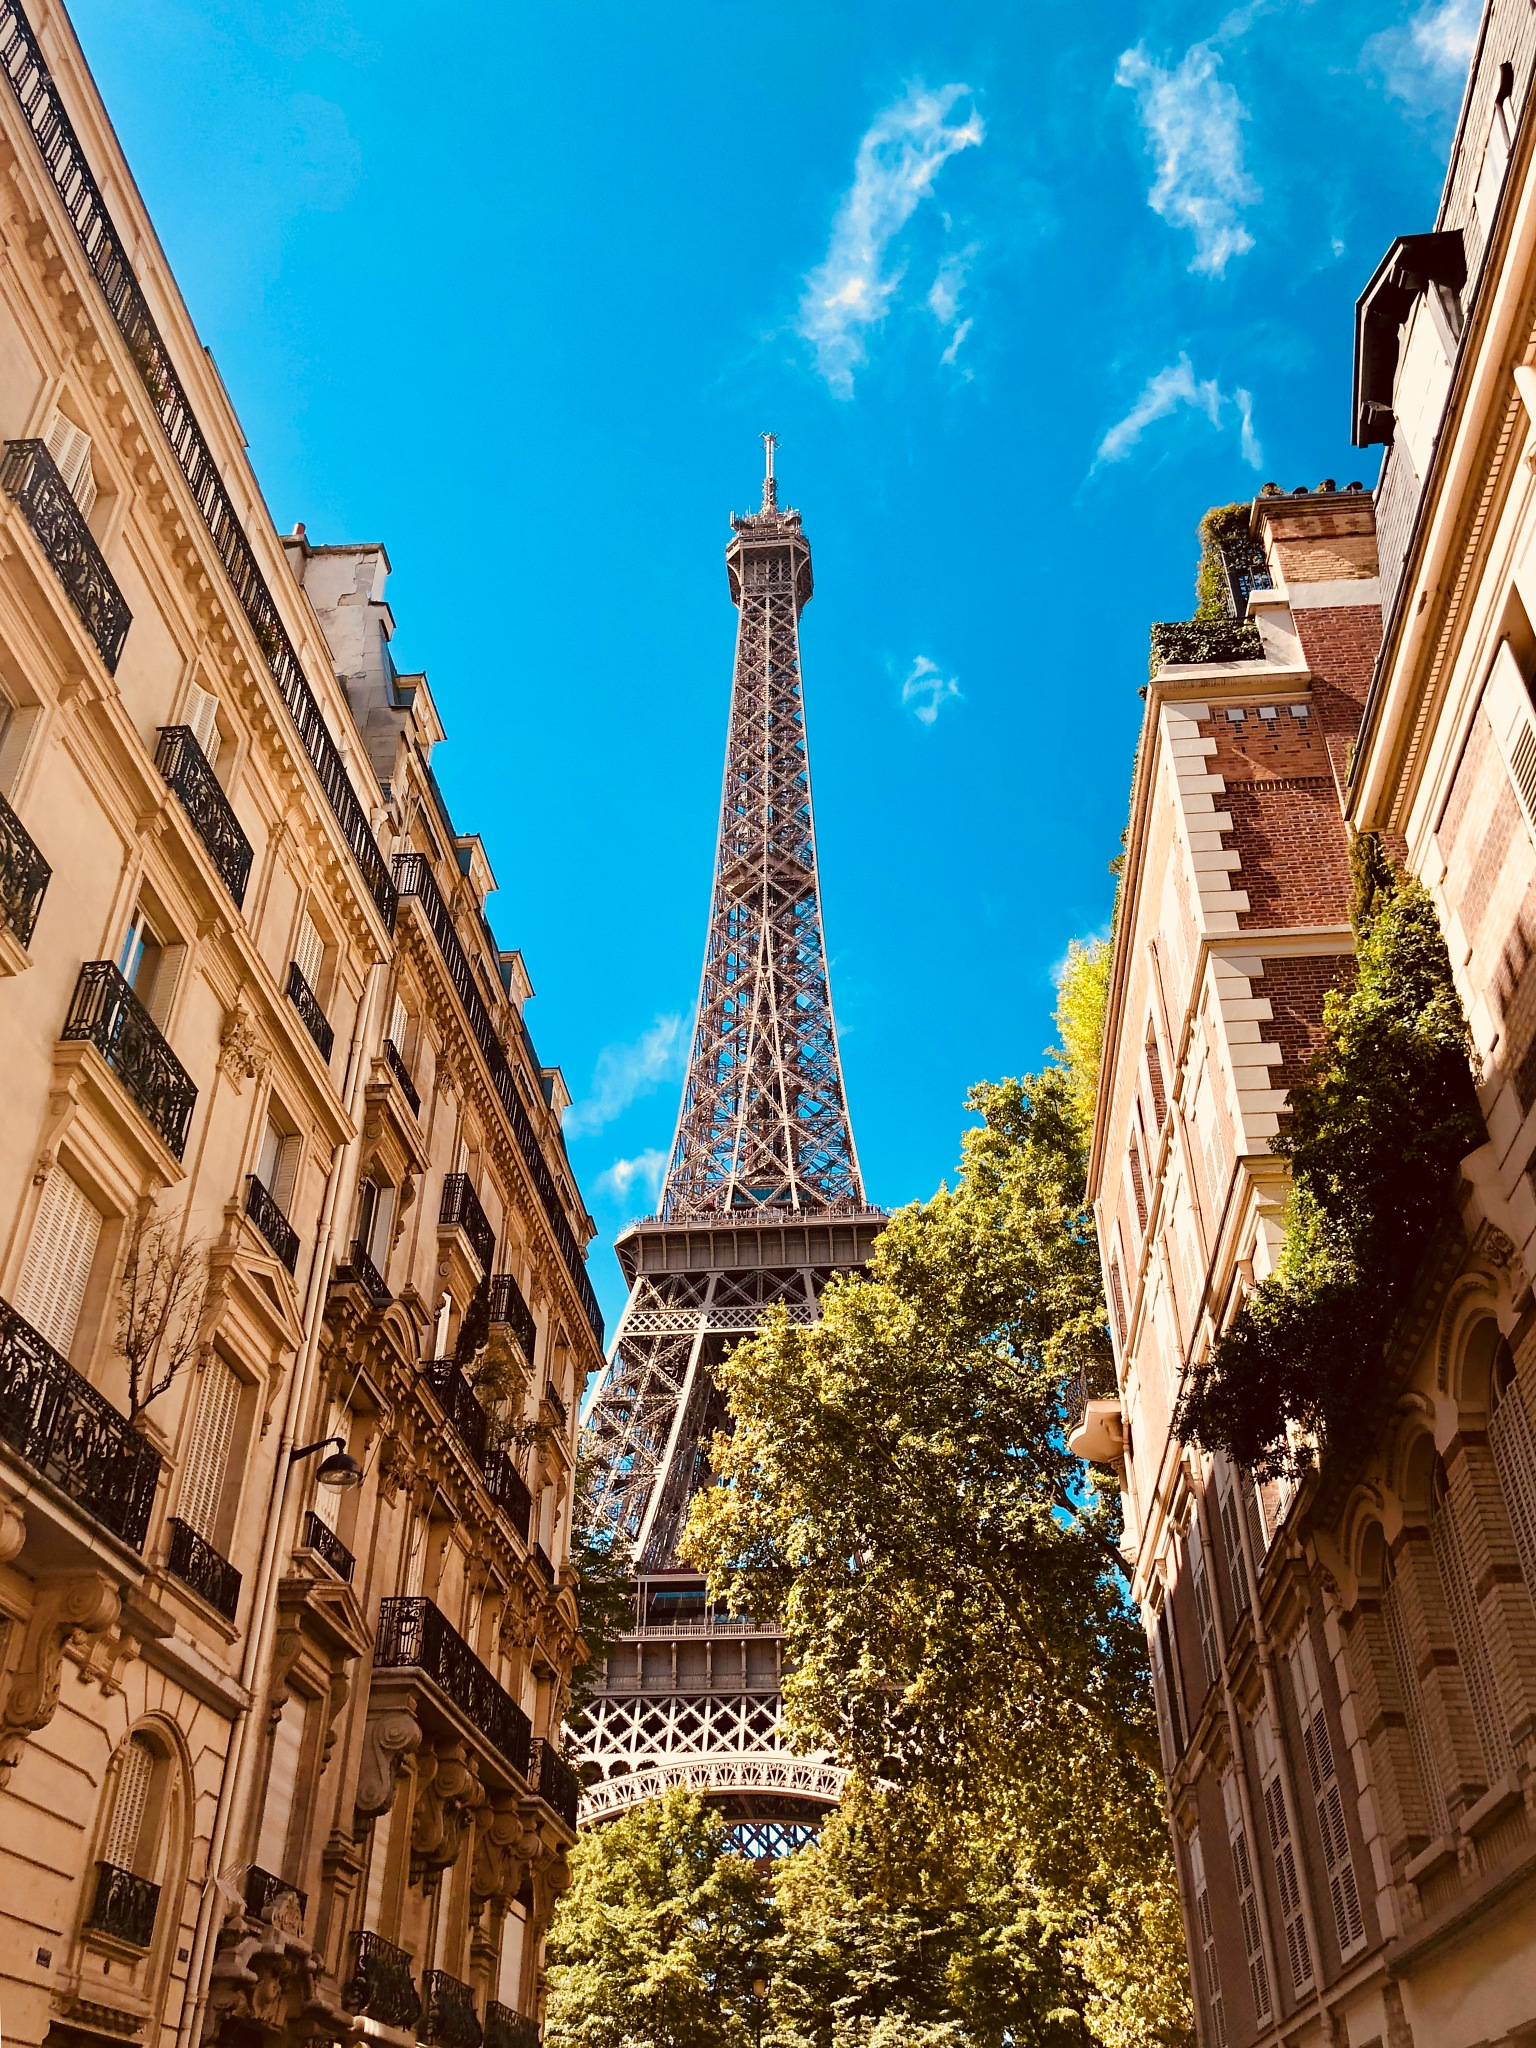 Paris  by coiatellimarco